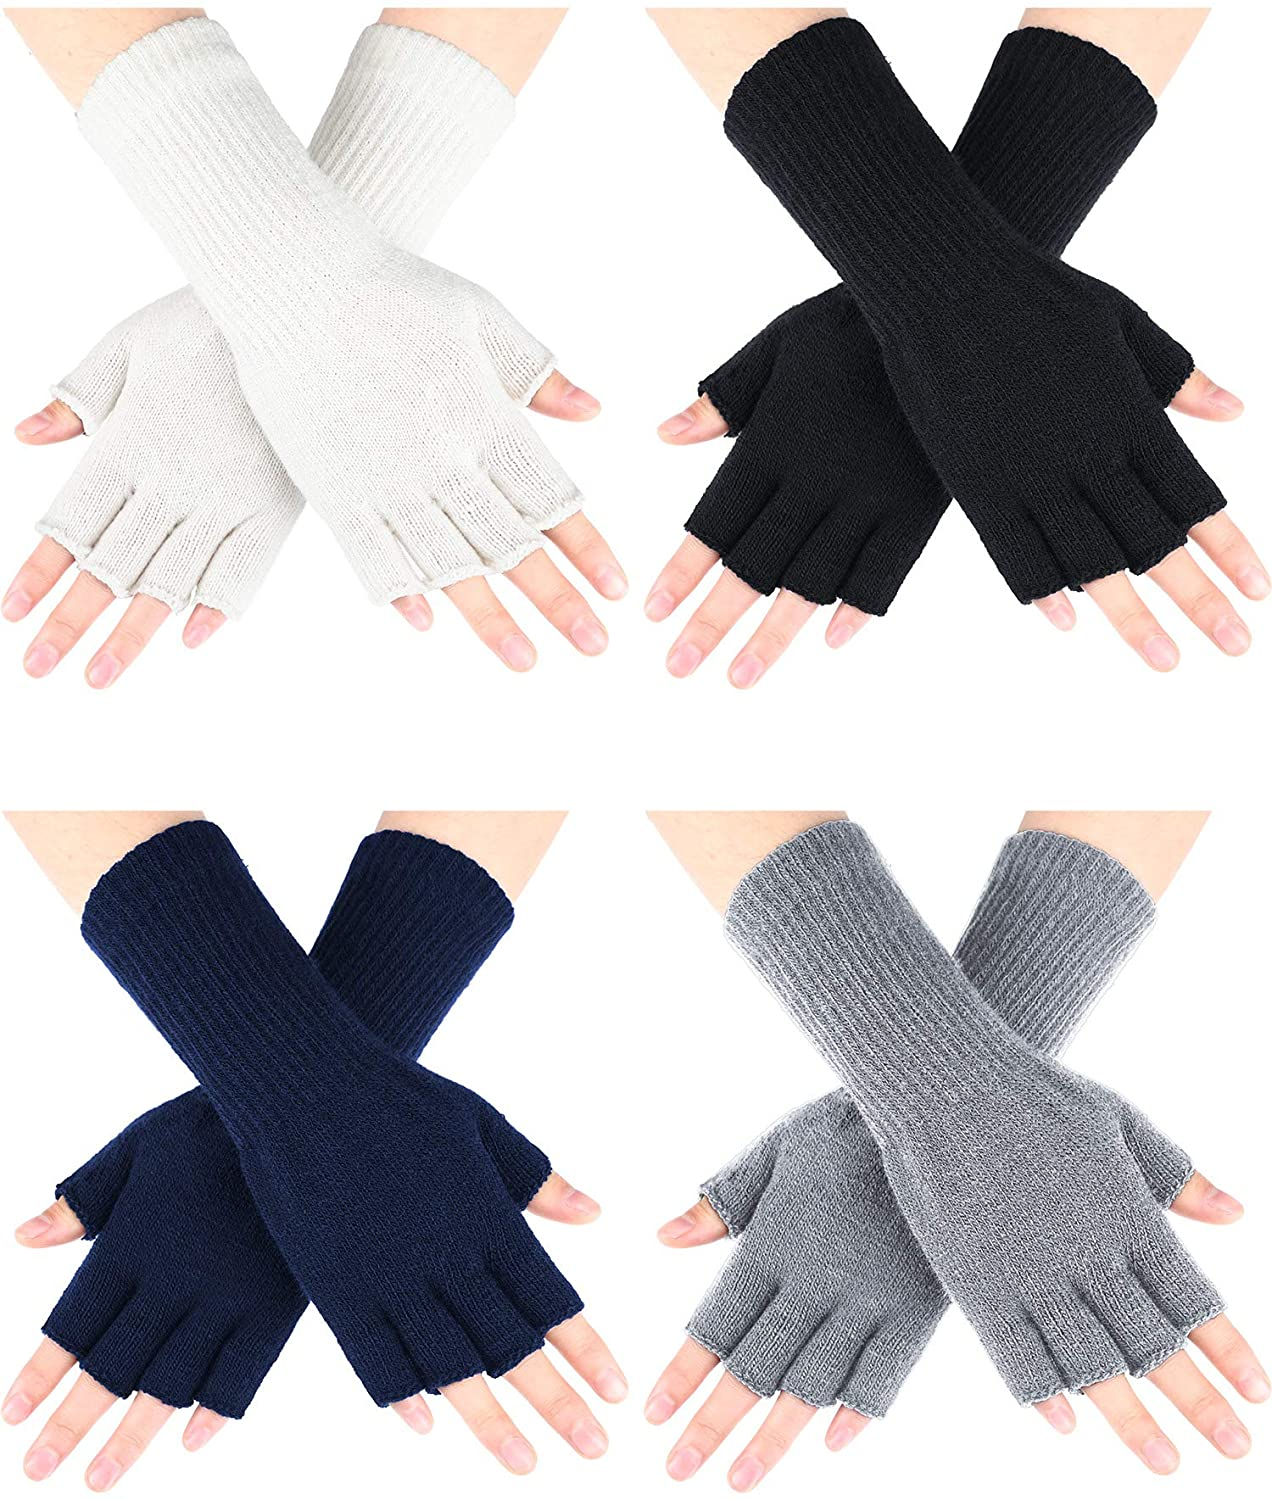 4 Pairs Long Fingerless Gloves Knitted Arm Warmers Winter Long Half Finger Mittens for Kids